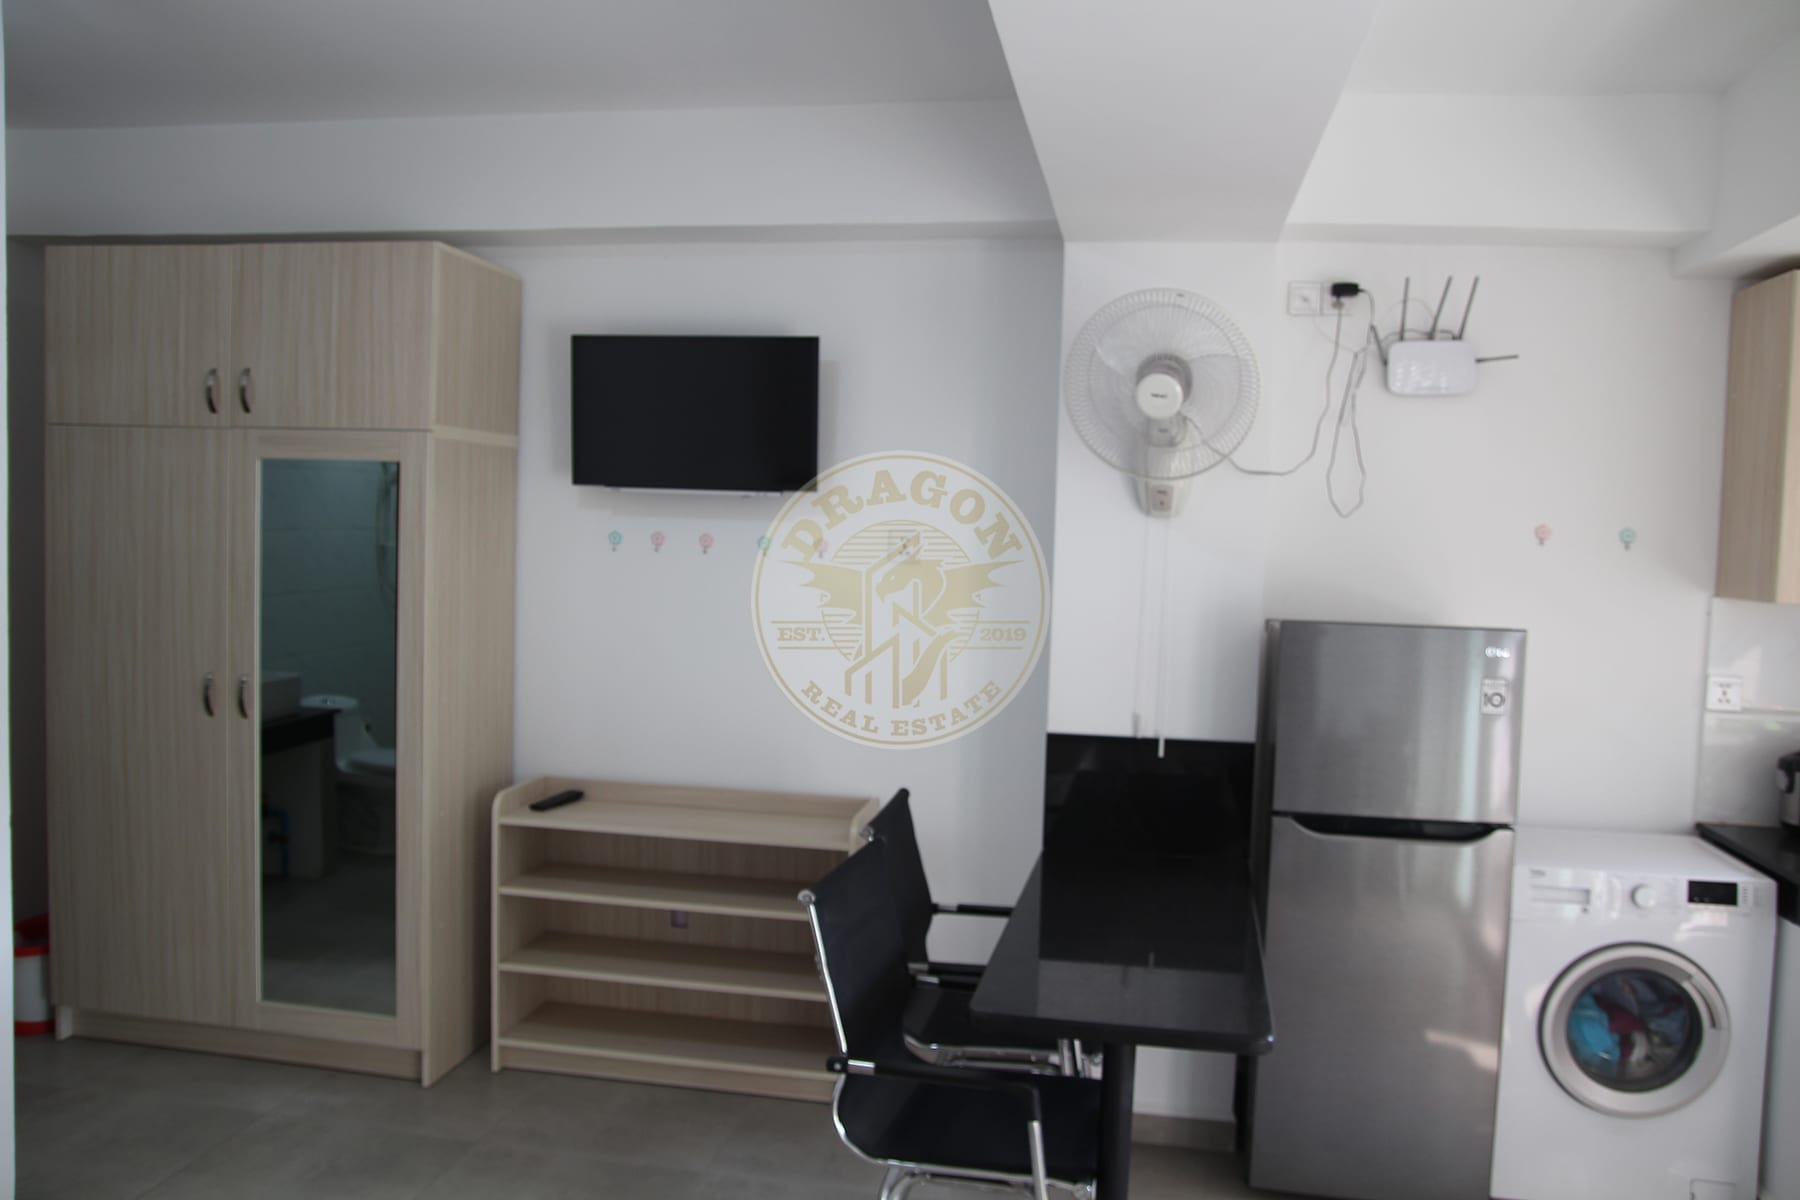 City Outside. Tranquility Inside. Studio for Rent in Sihanoukville. Sihanoukville Property